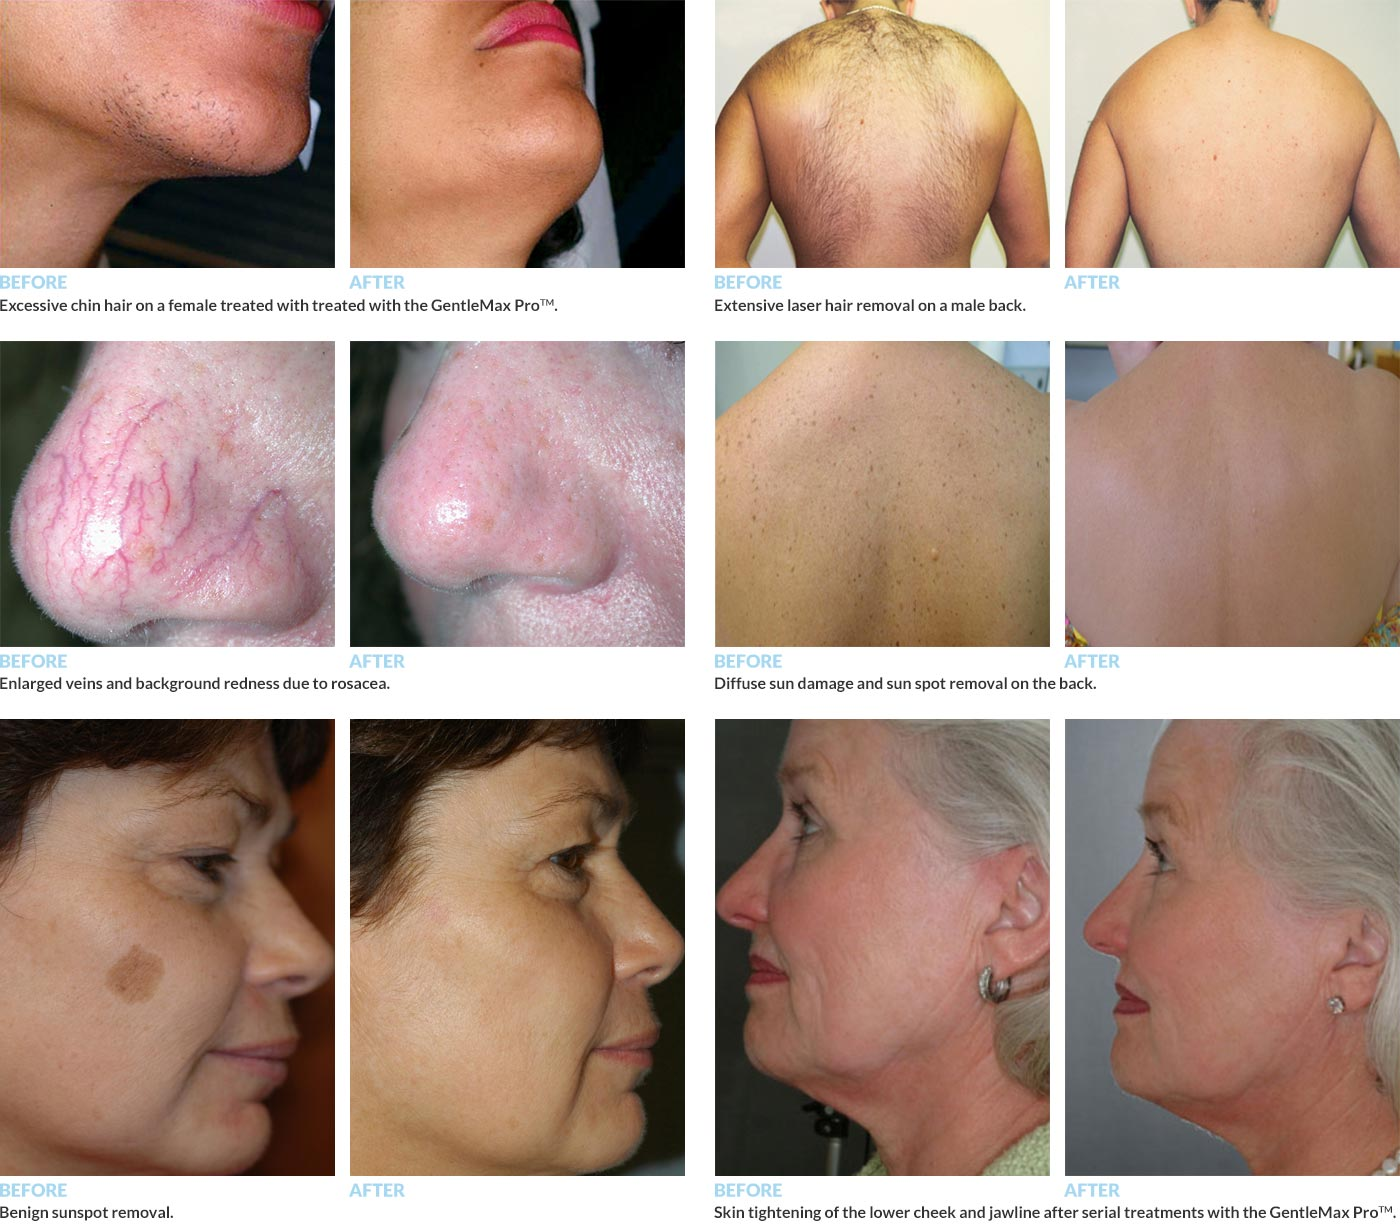 Before and After Photos of Patients Treated with GentleMax Pro